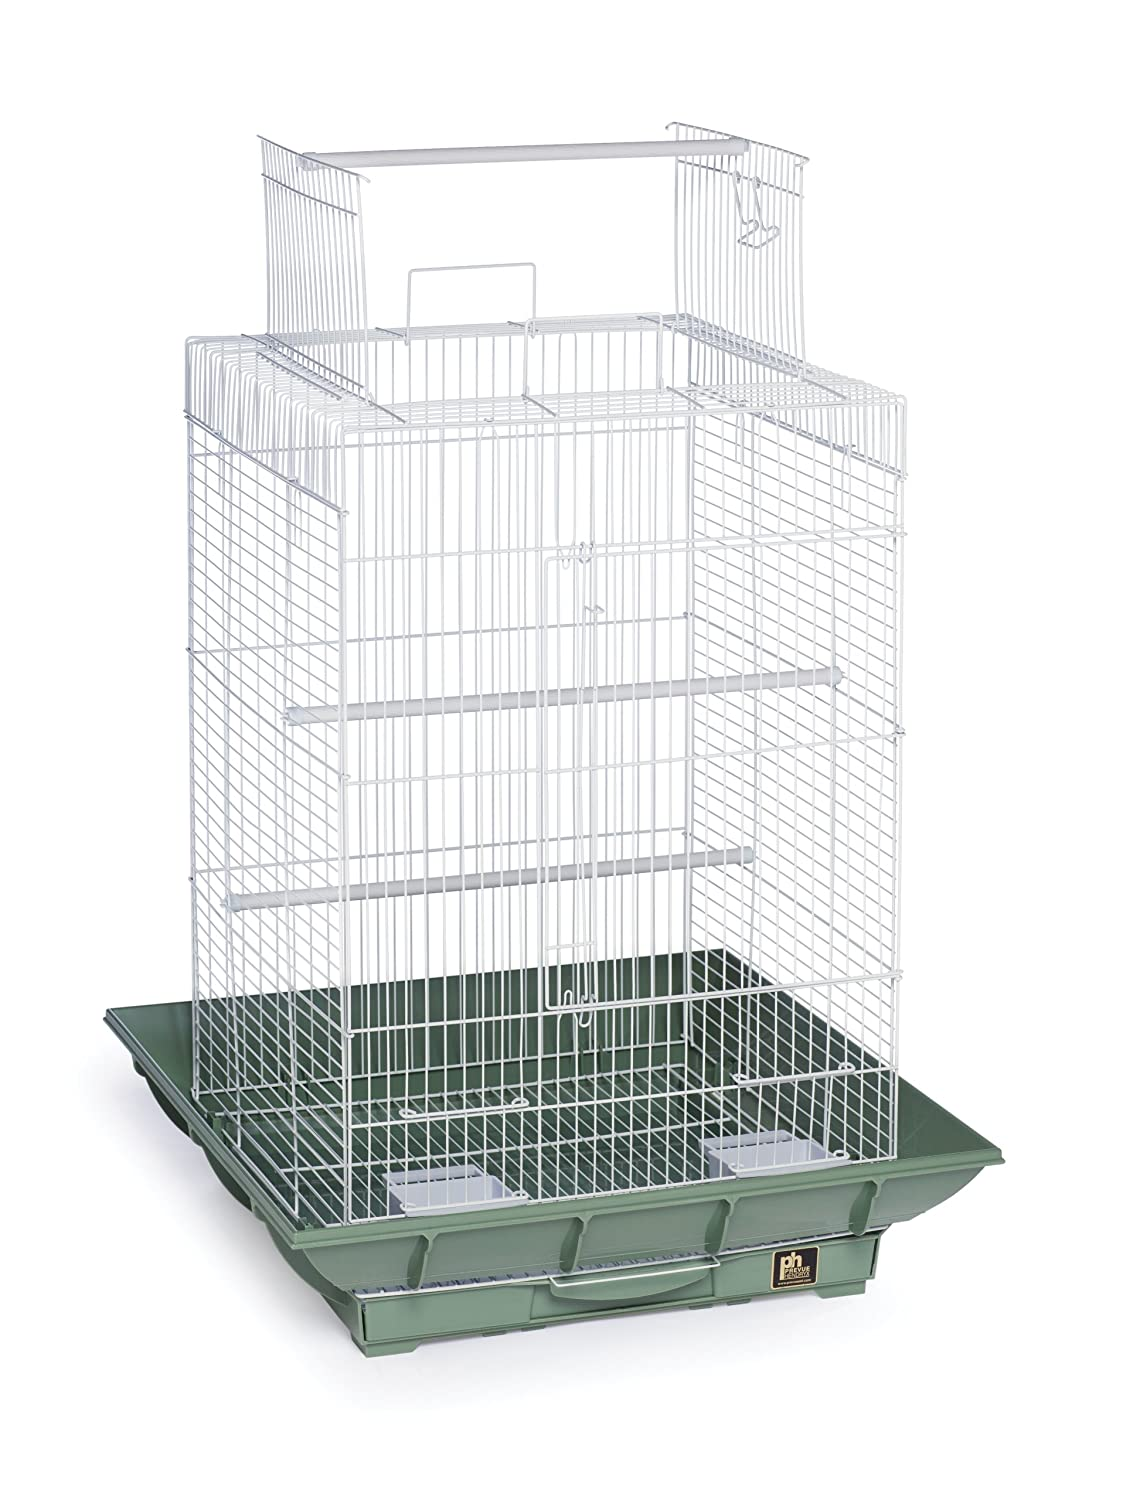 Prevue Pet Products Clean Life Playtop Bird Cage SP851 Green and White Inc. SP851G/W